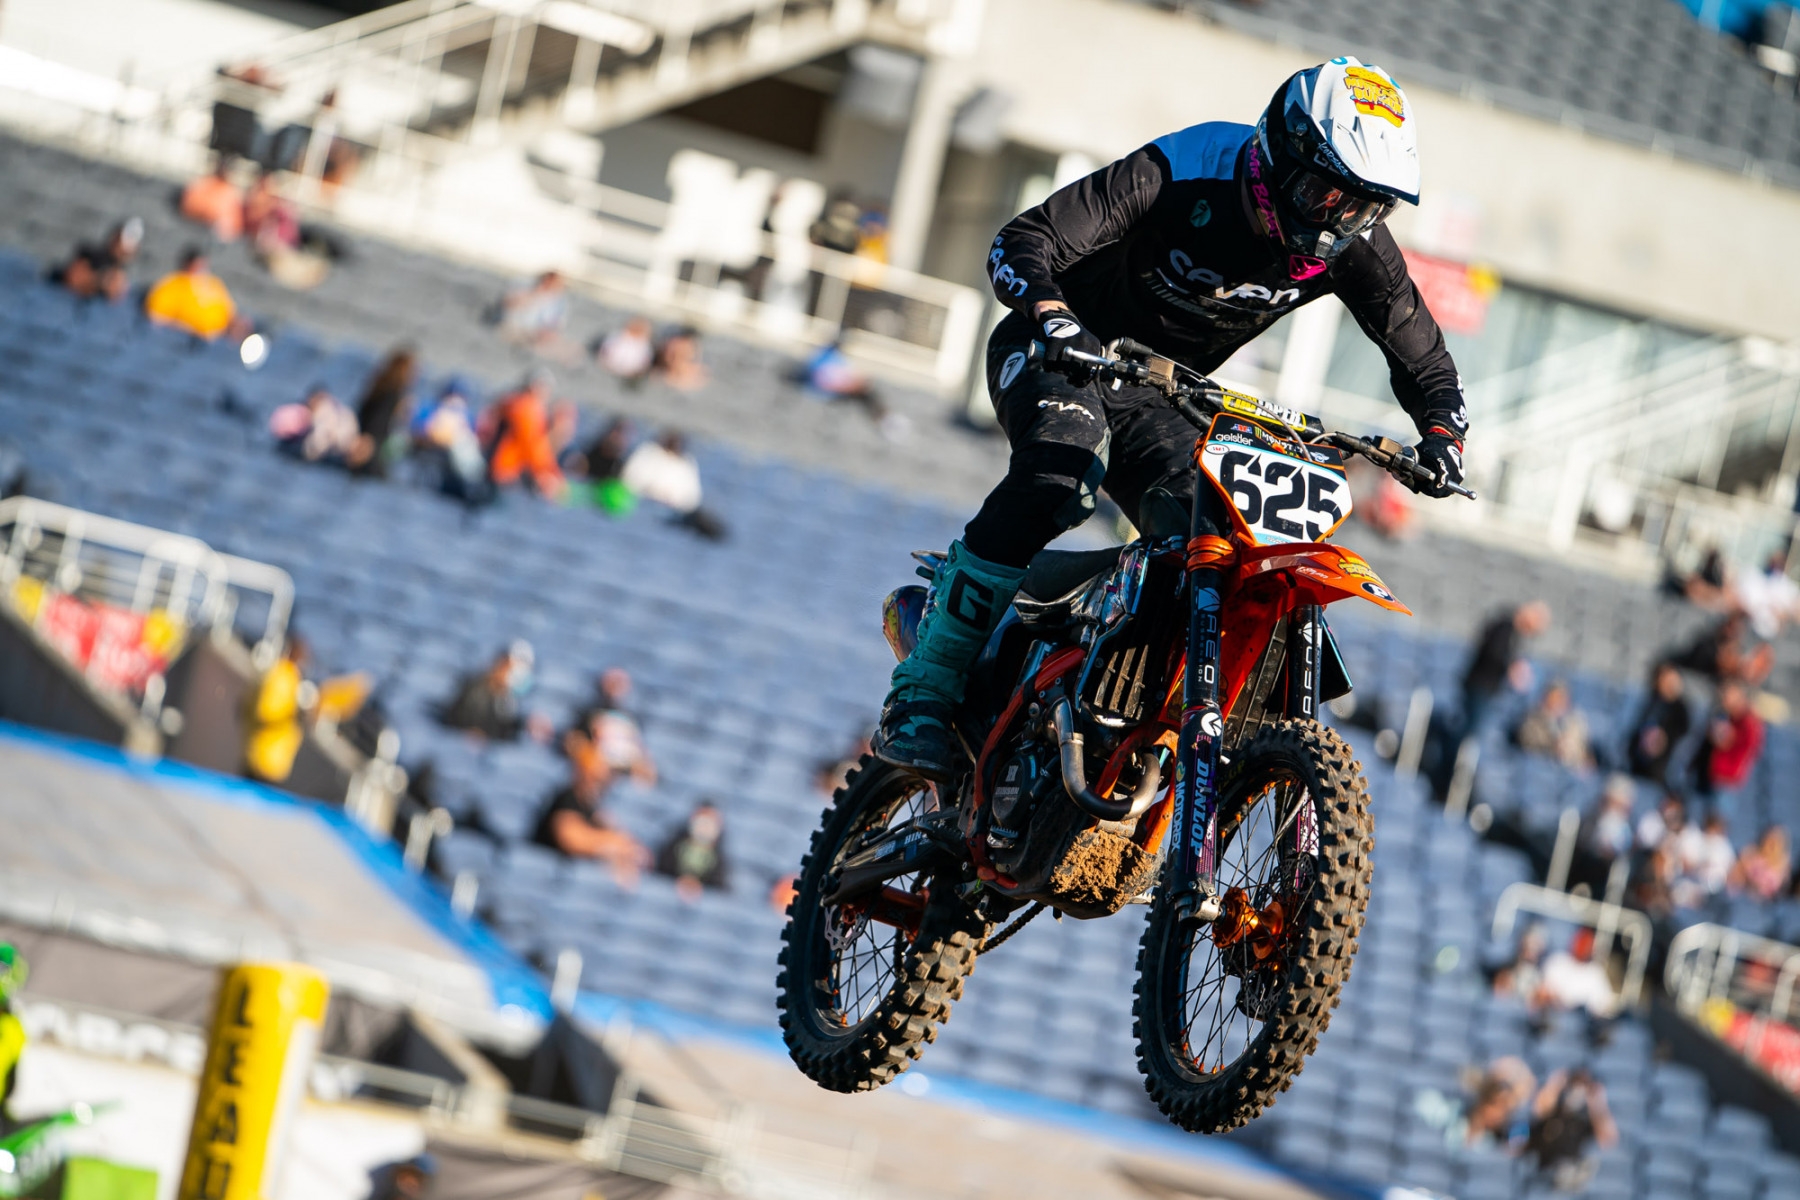 2021-ORLANDO-TWO-SUPERCROSS_KICKSTART_1521